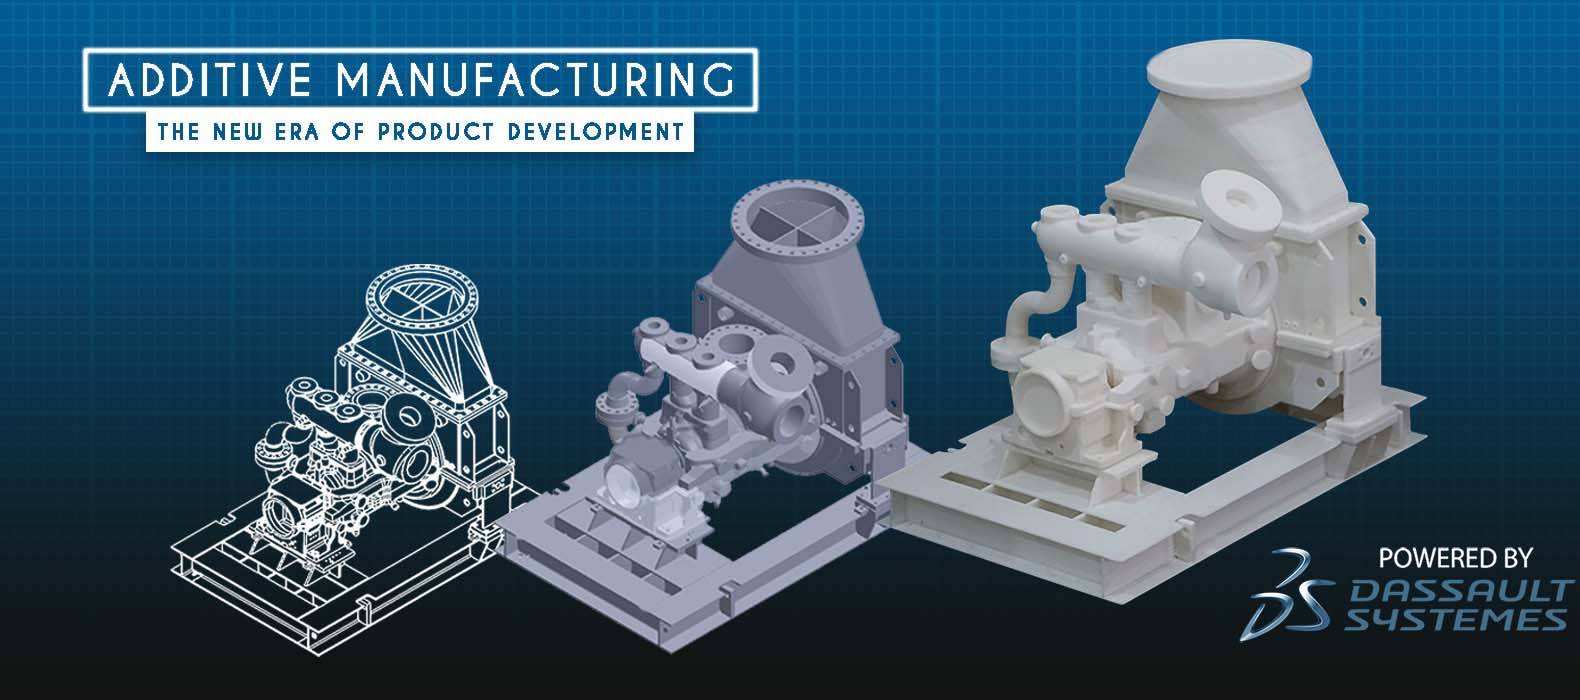 additive-manufacturing-3dprinting-services